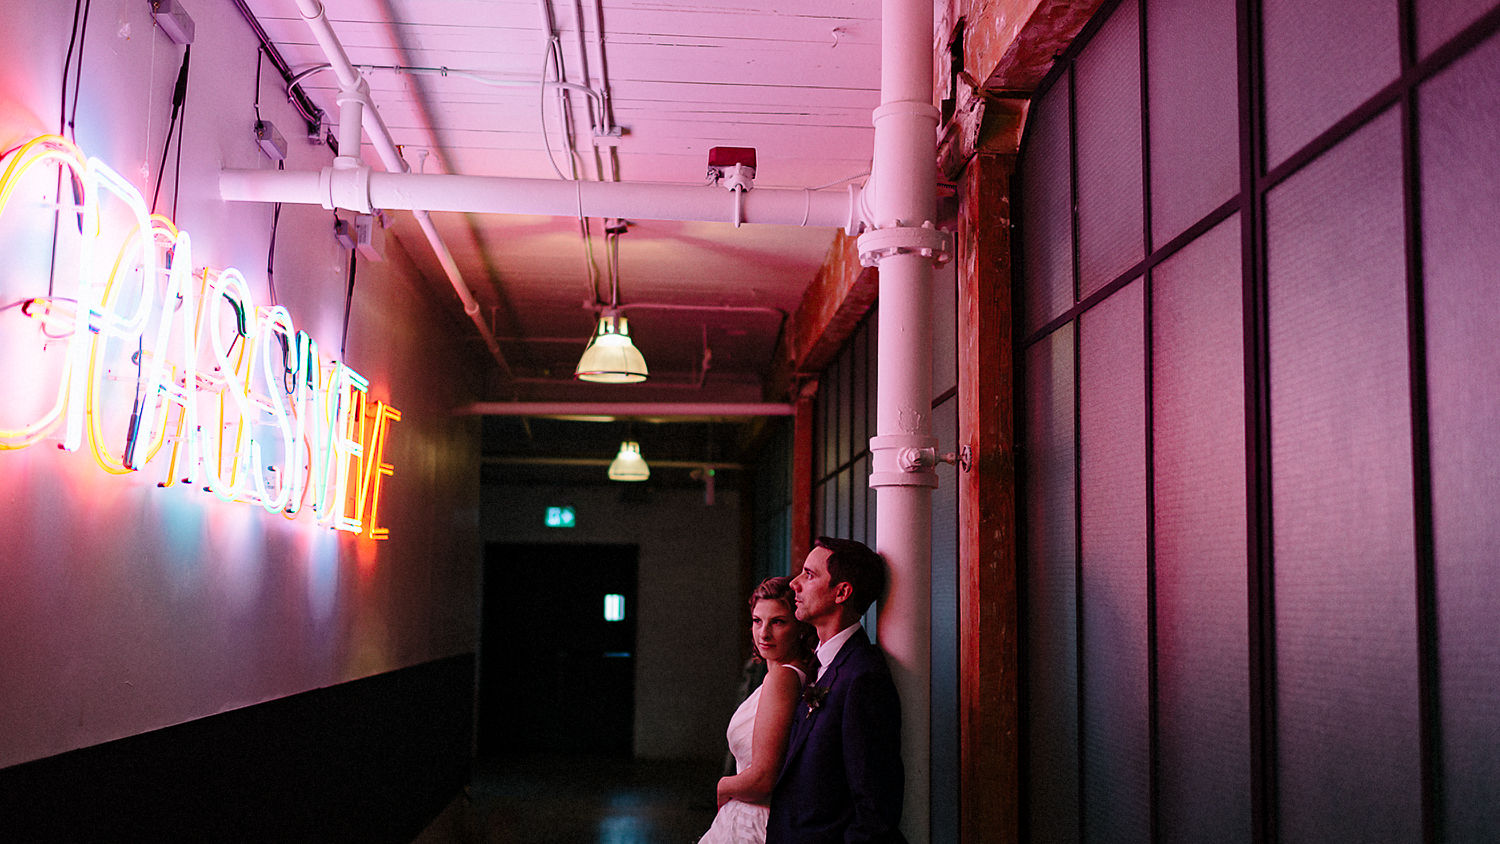 East-Room-Wedding-Queen-Street-East-Toronto-Intimate-Indie-Vintage-Wedding-Candid-Wedding-Photography-22.jpg